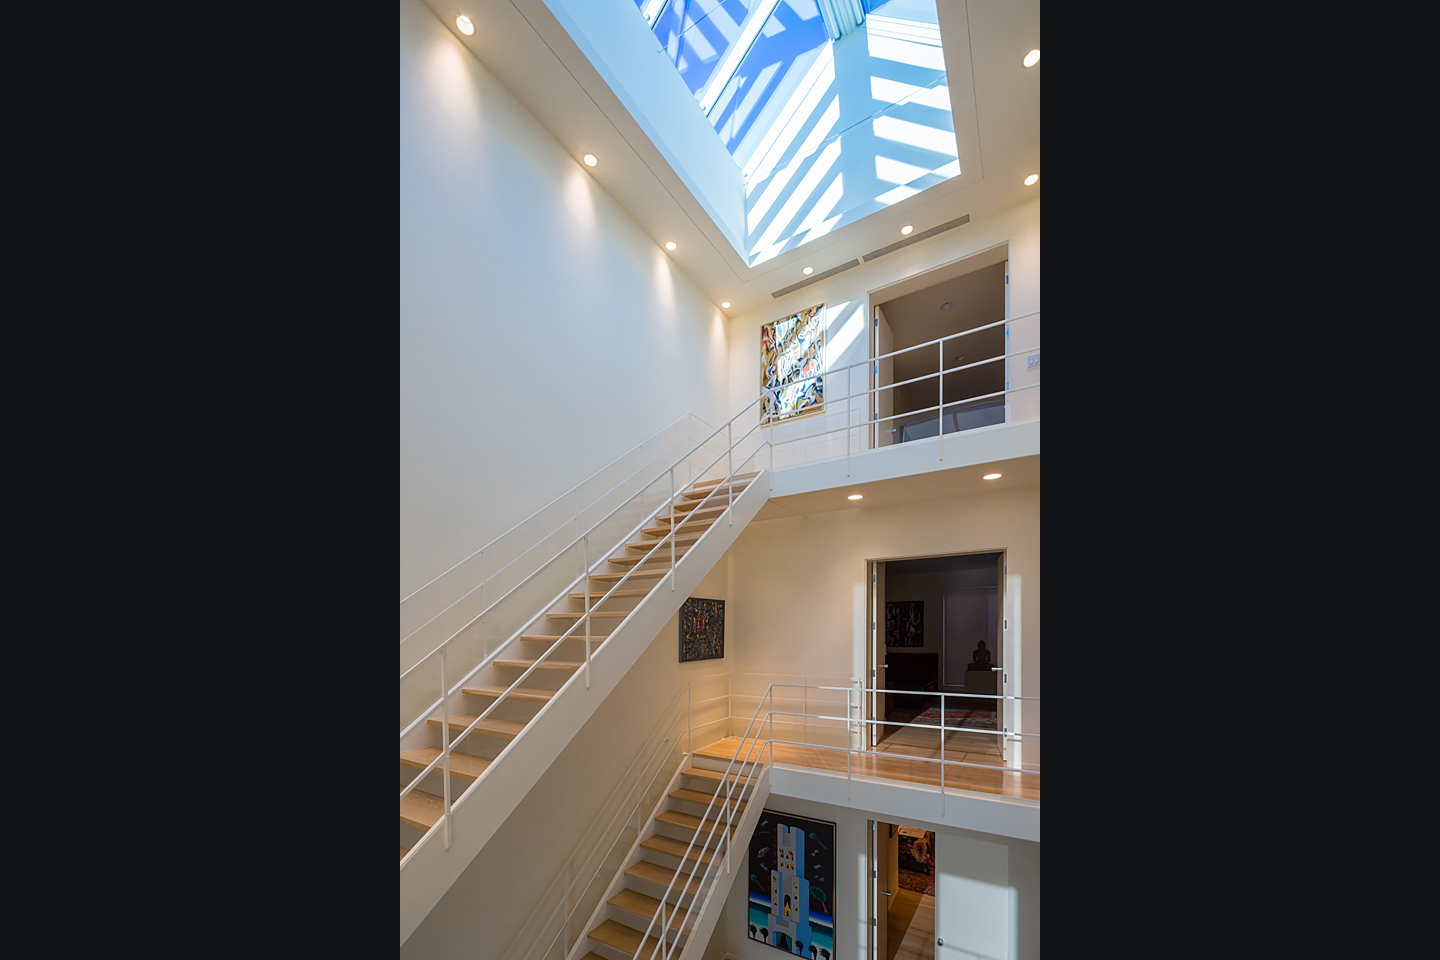 multi-story atrium featuring massive commercial skylight system 01, photographed by Jacob Rosenfeld Photography